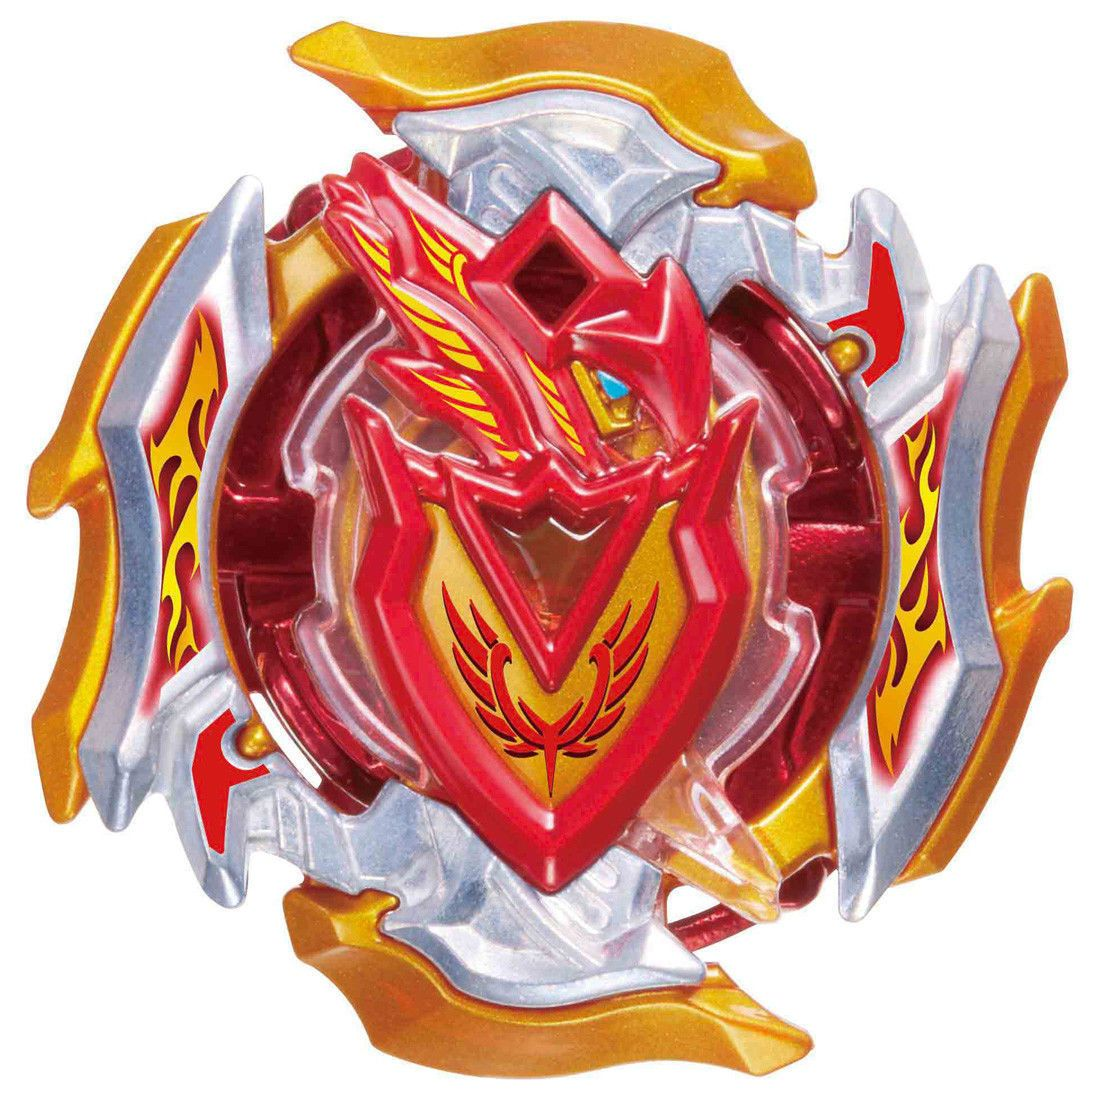 Takara Tomy Beyblade burst B121 Triple Booster Set JAPAN